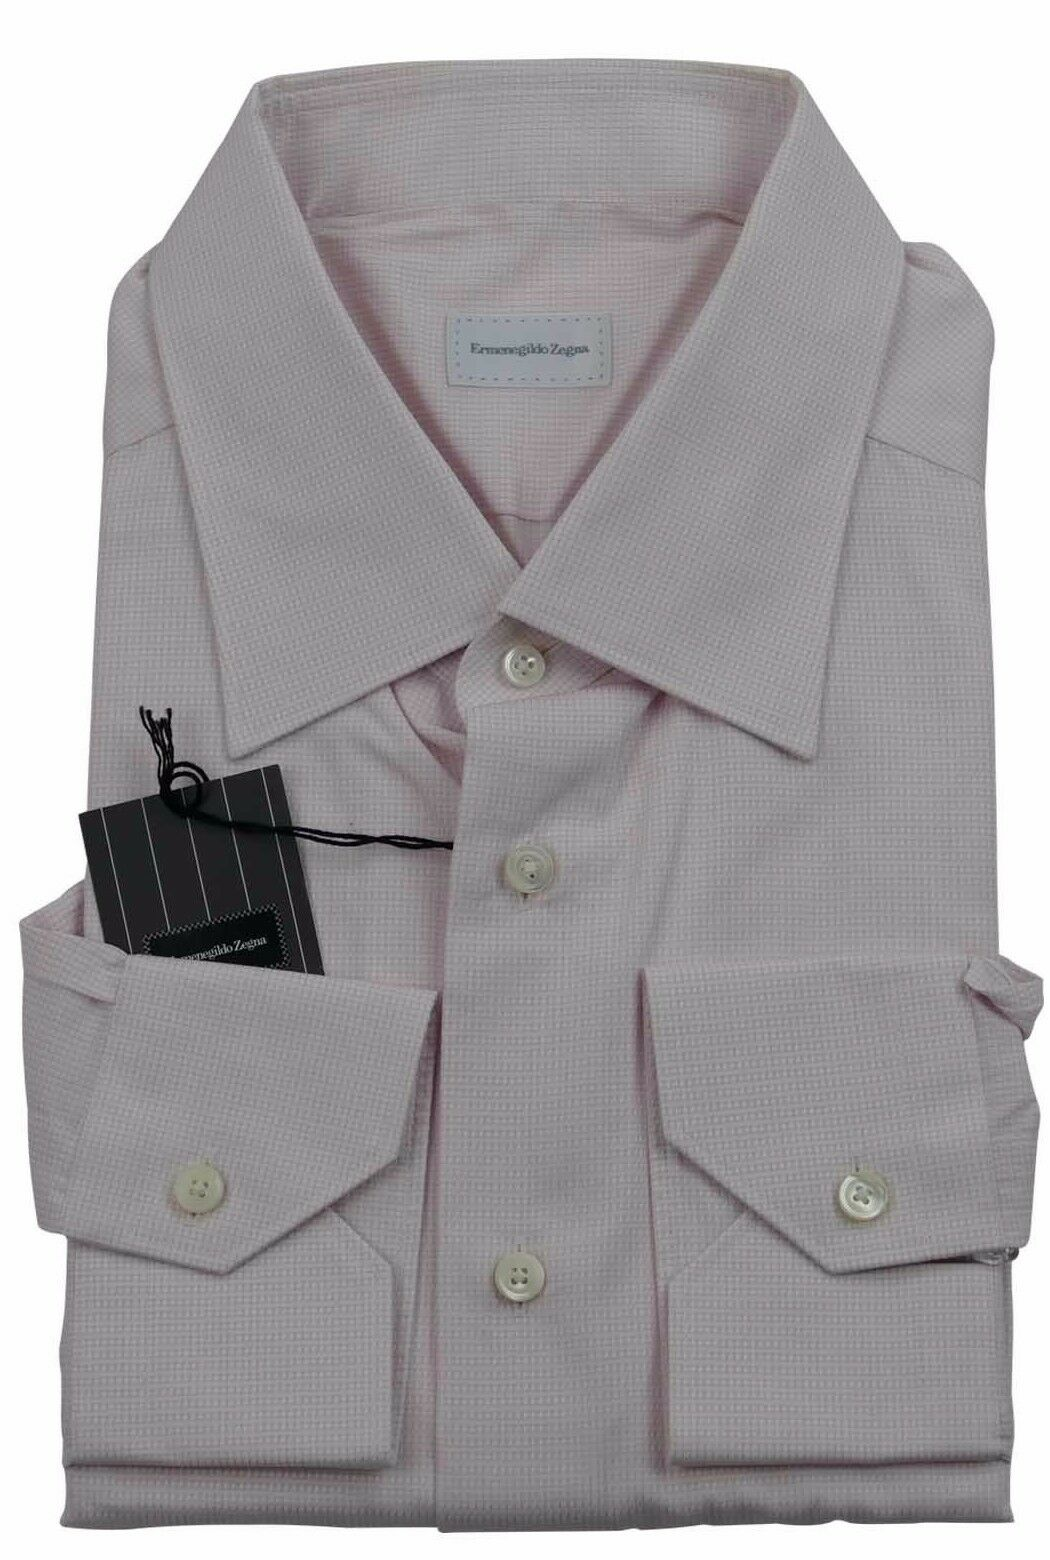 Ermenegildo Zegna rosa Self-Check Camicia Made in